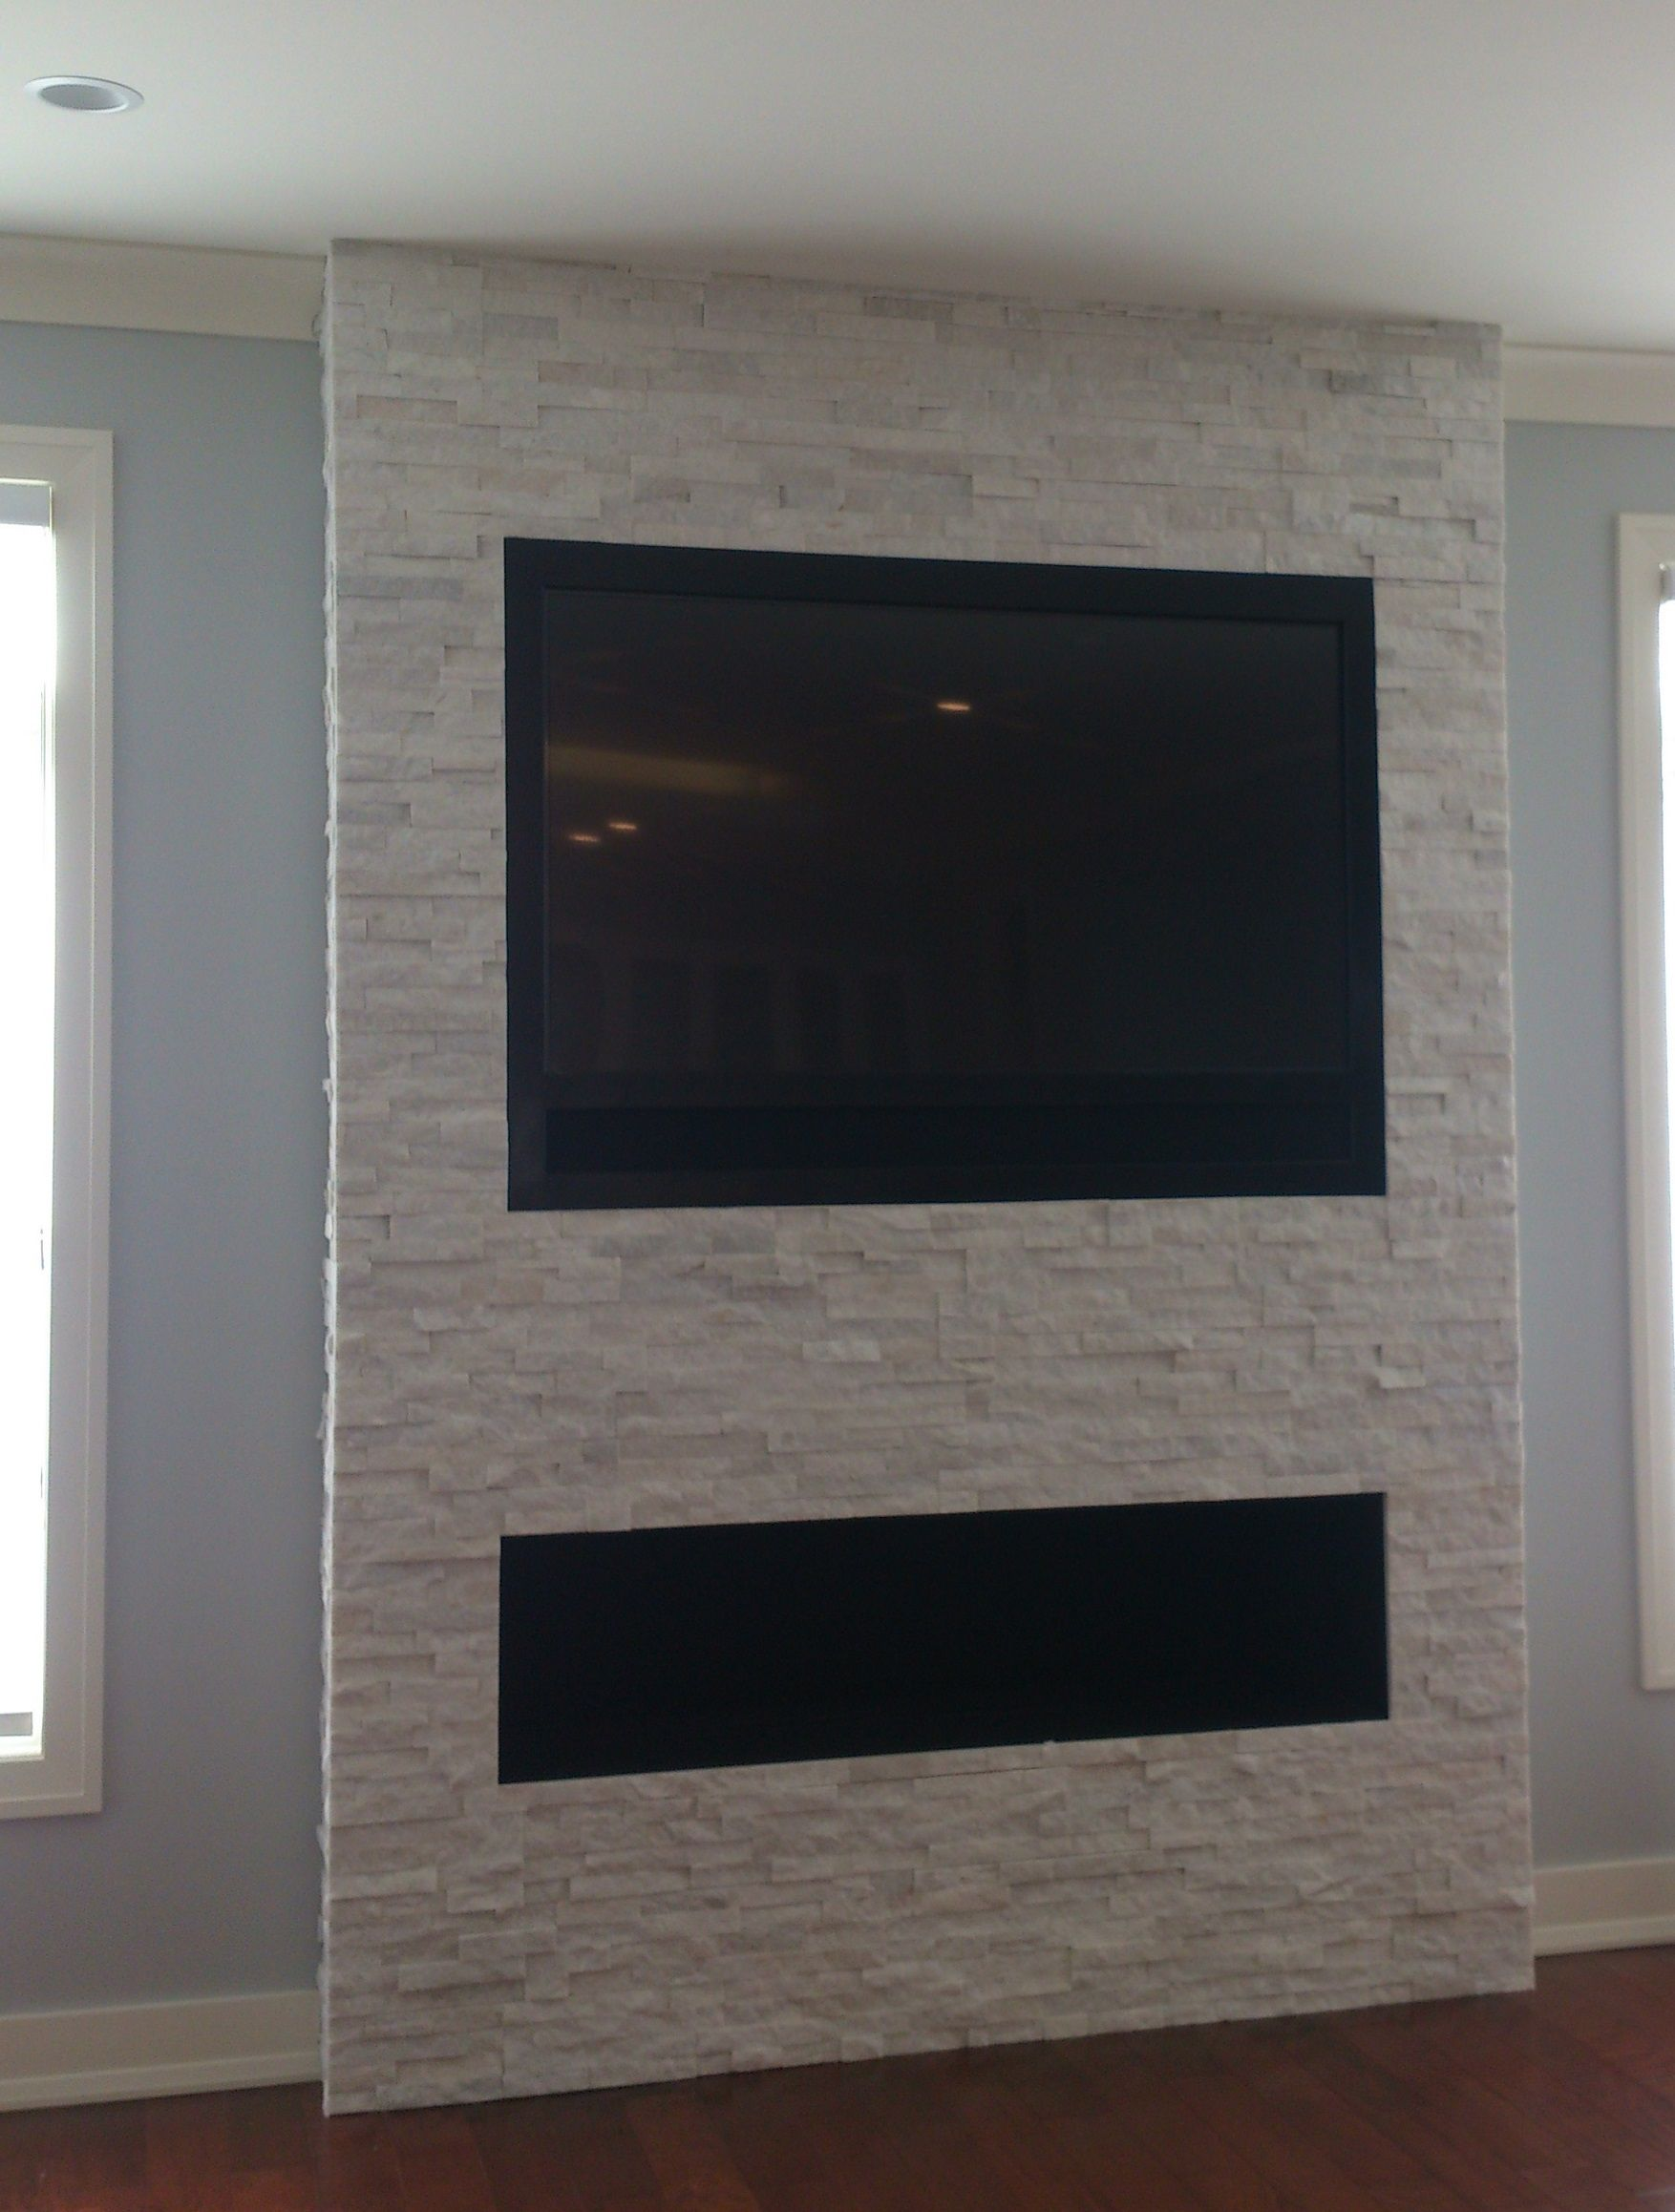 Over The Fireplace Tv Cabinet Wondering How To Mount A Tv Over A Fireplace Without A Mantel We